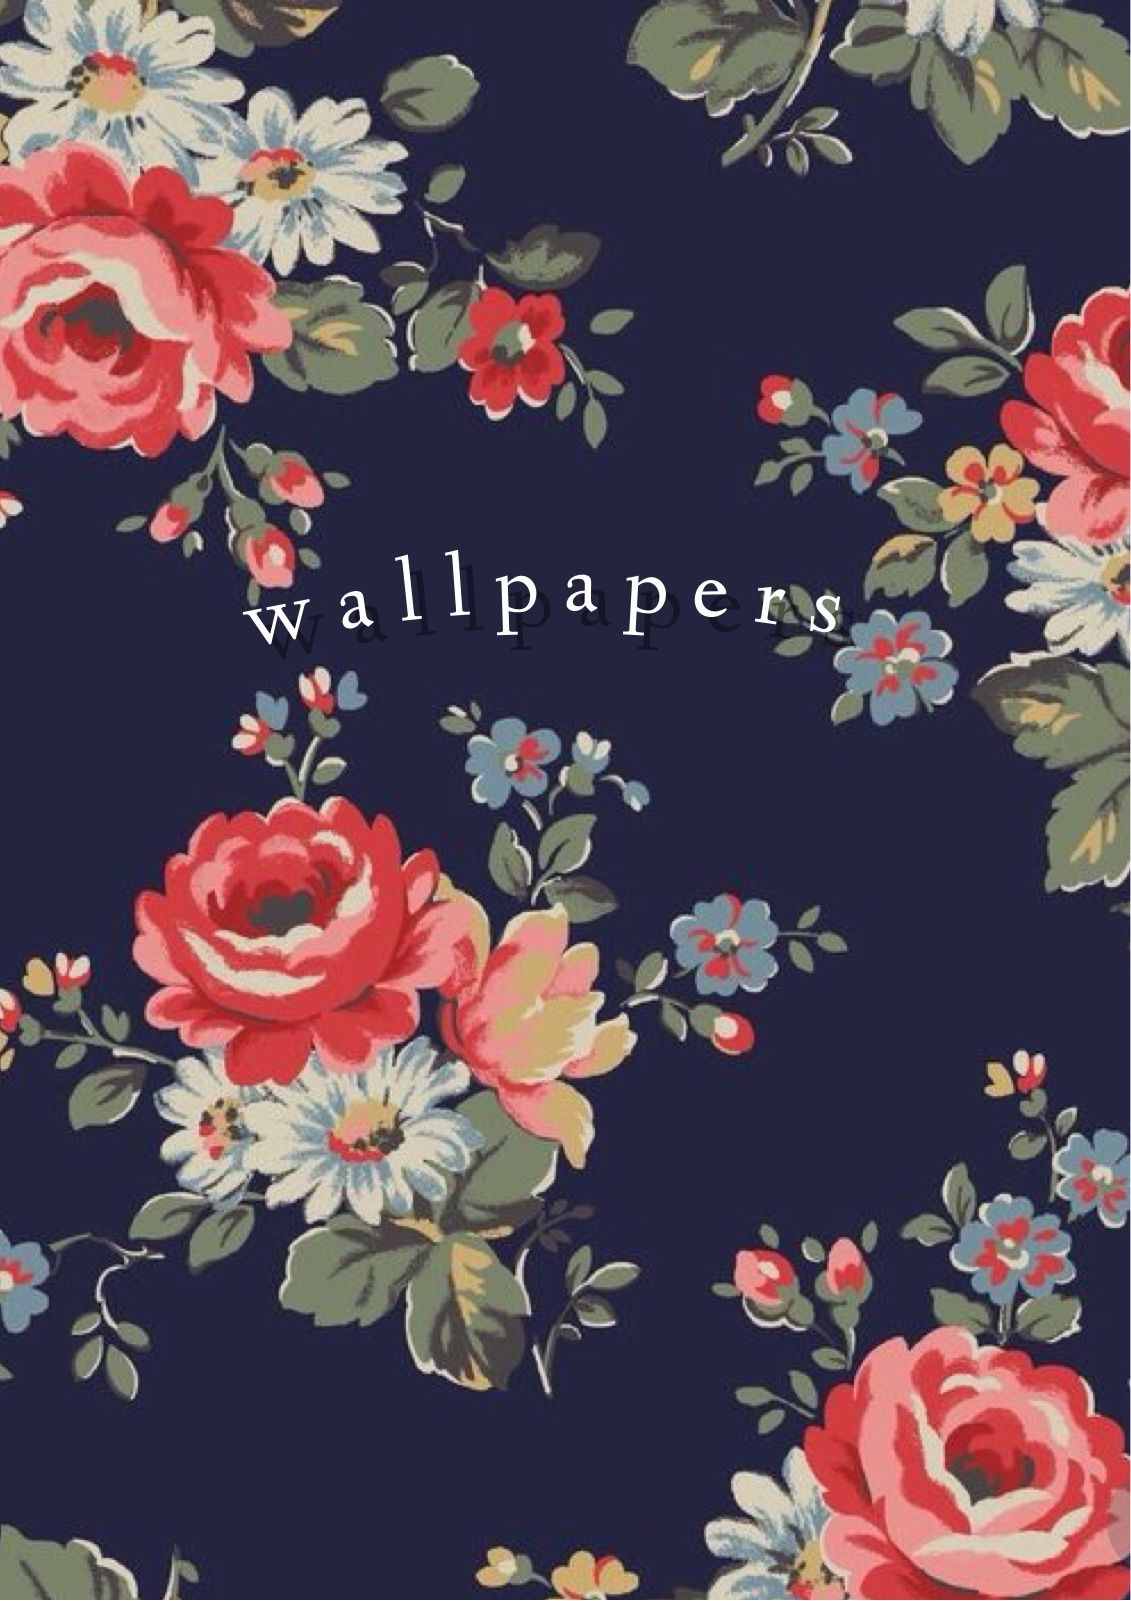 Pin By Charisse Gamble On Wallpapers Floral Wallpaper